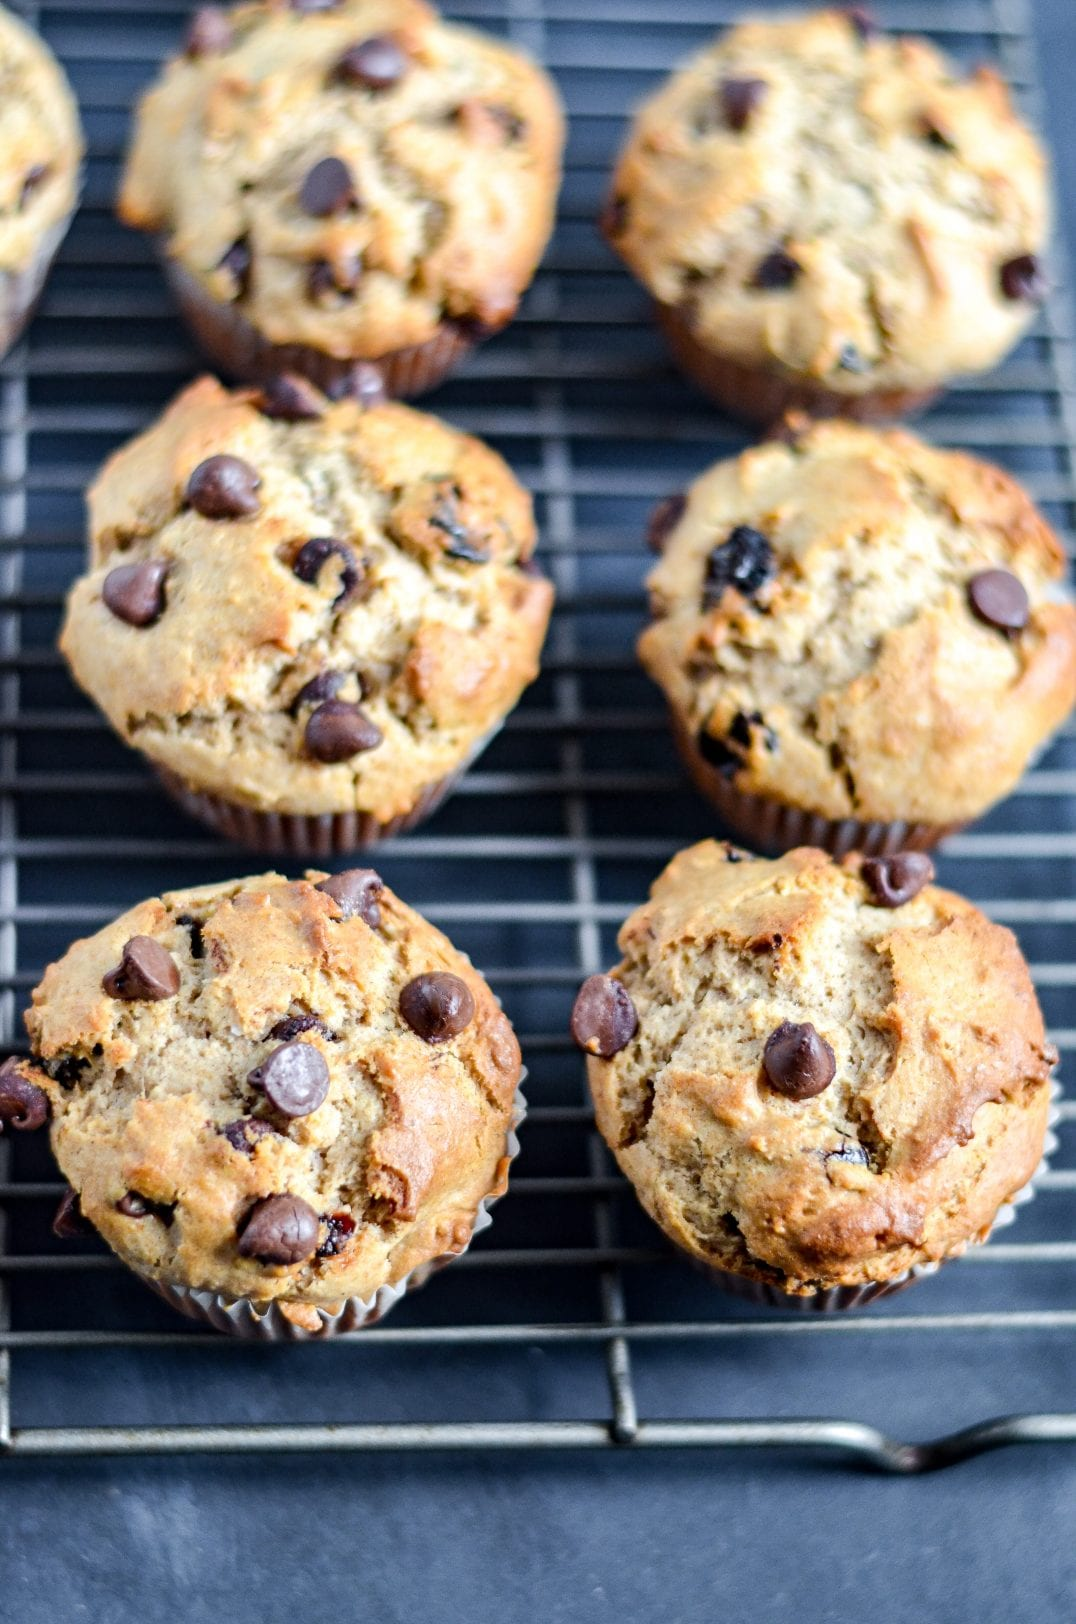 baked muffins with chocolate chips on top sitting on a baking dish